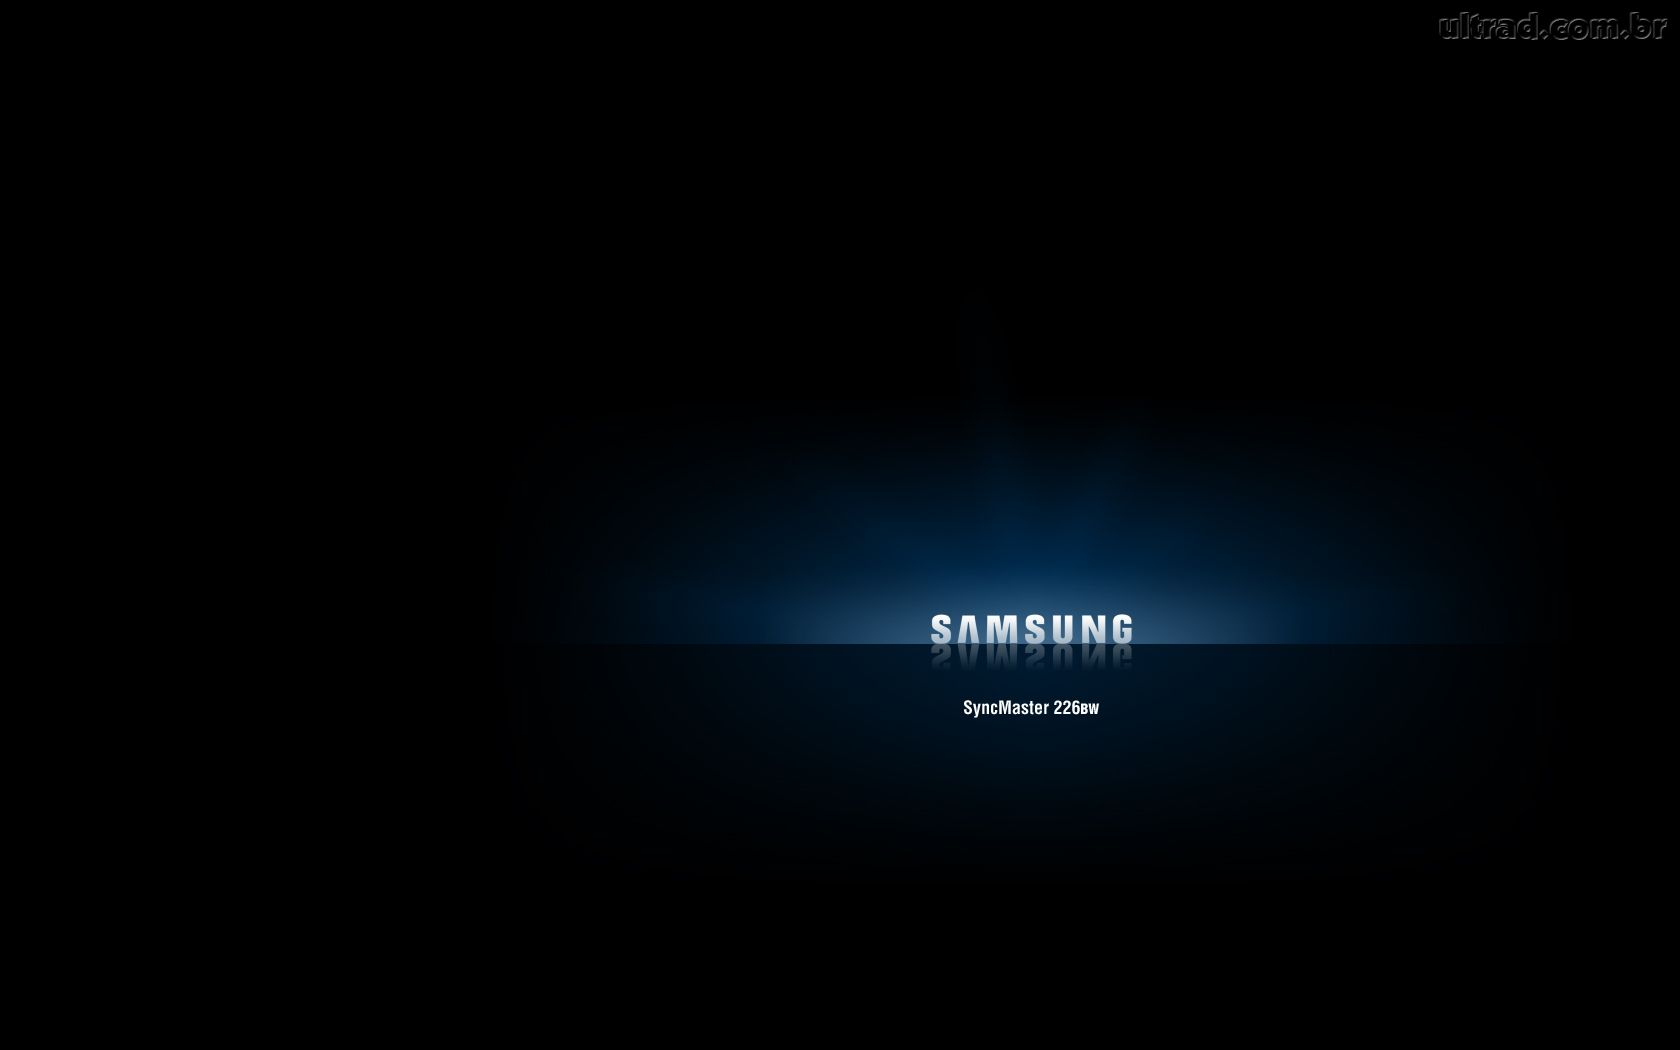 samsung live wallpaper hd download